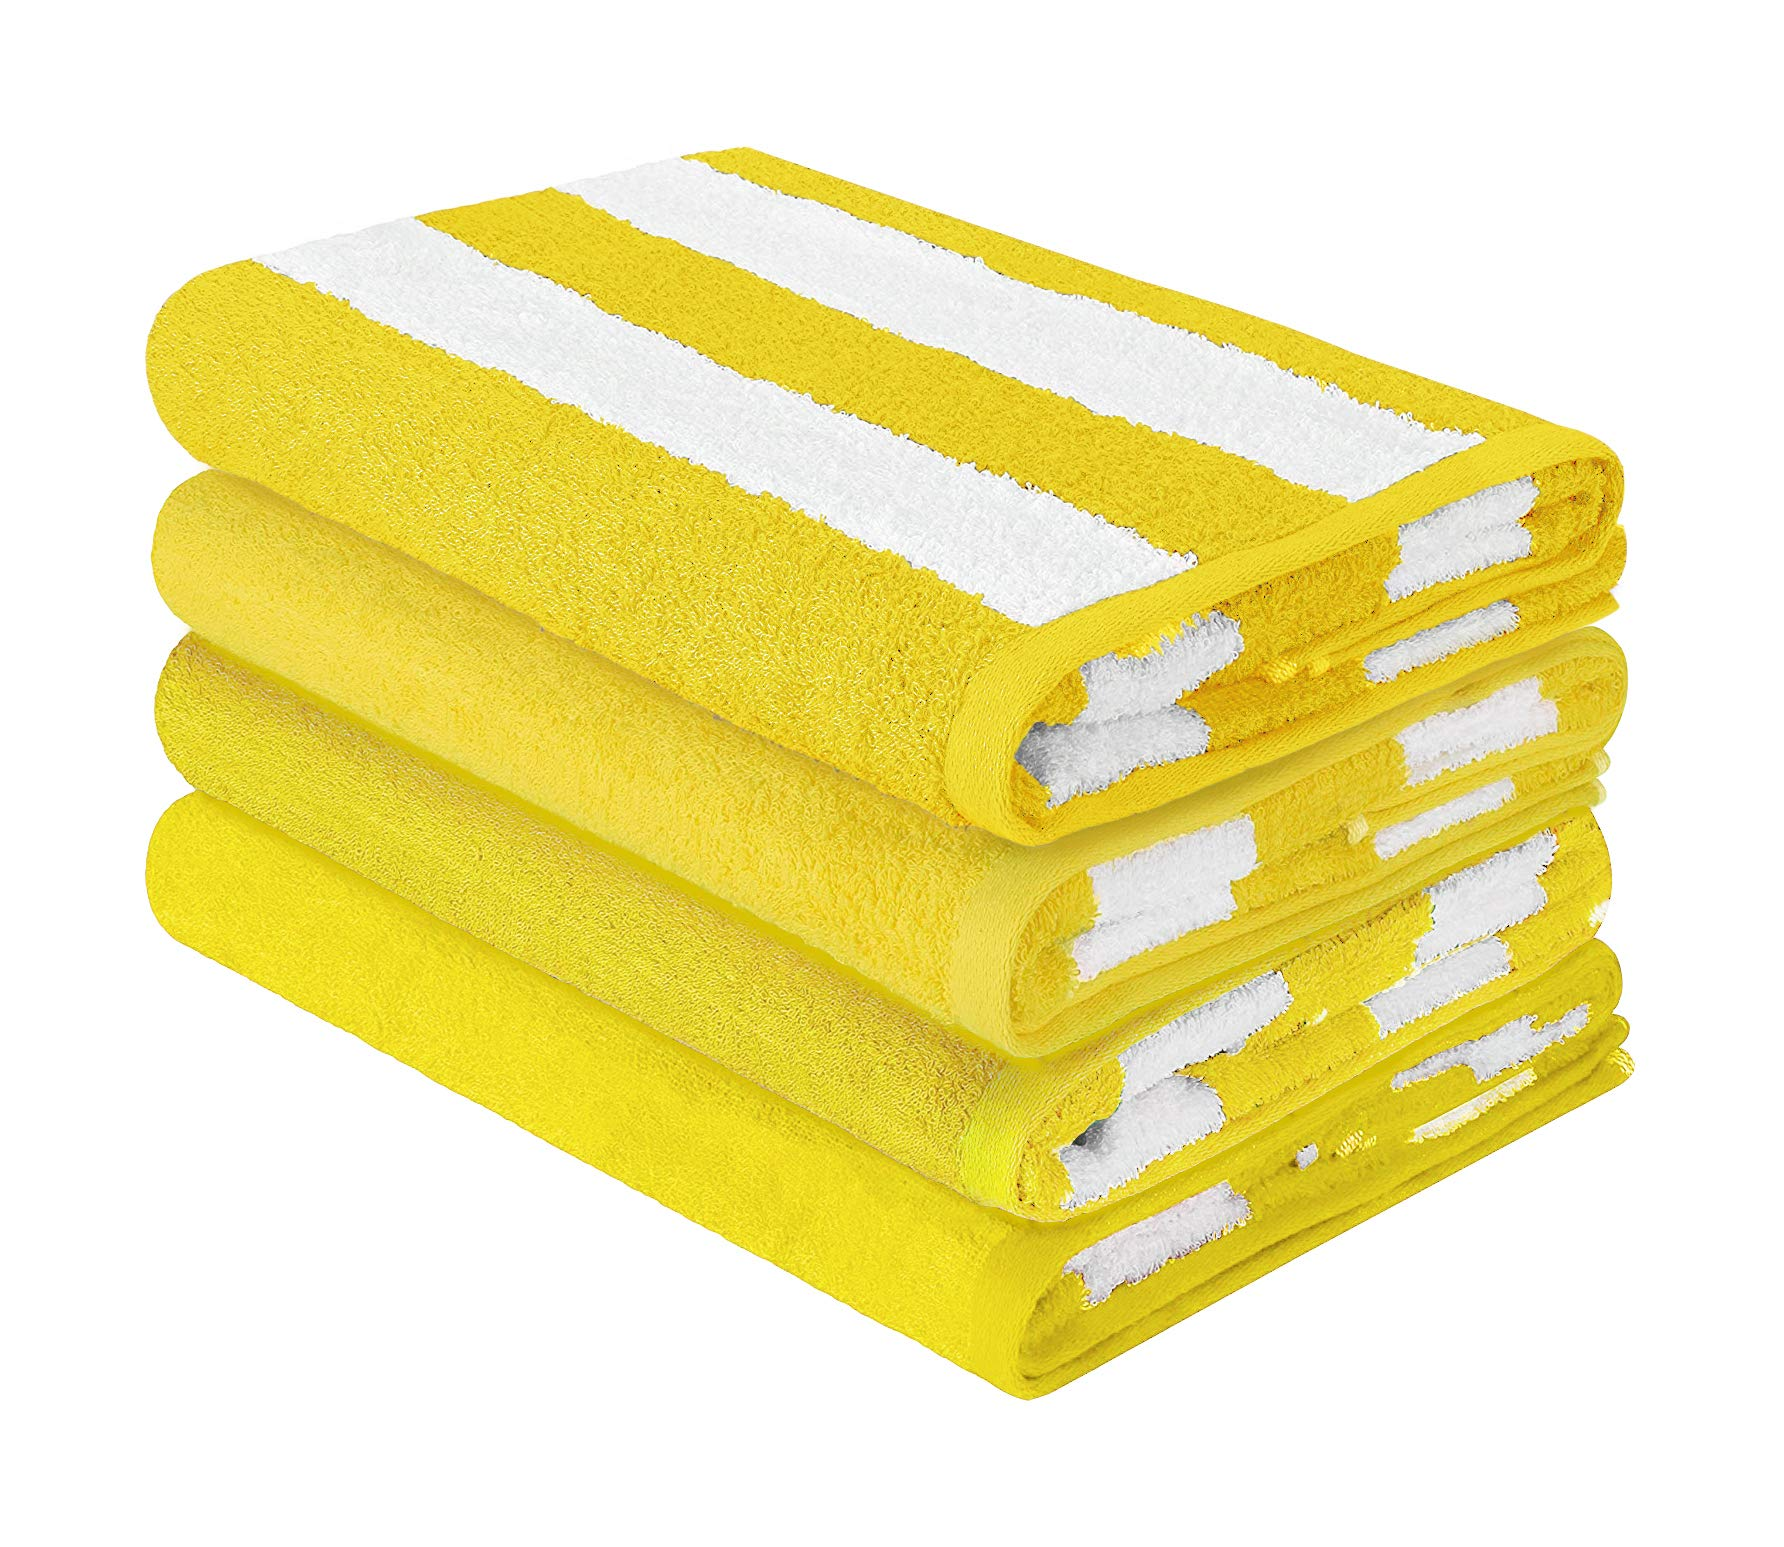 HomeLabels Luxury Premium Quality Cabana Beach Towels - Pack of 4 Cabana Stripe Pool Towels (30 x 60 Inches) Multi Purpose Towels with High Absorbency, Yellow by HomeLabels